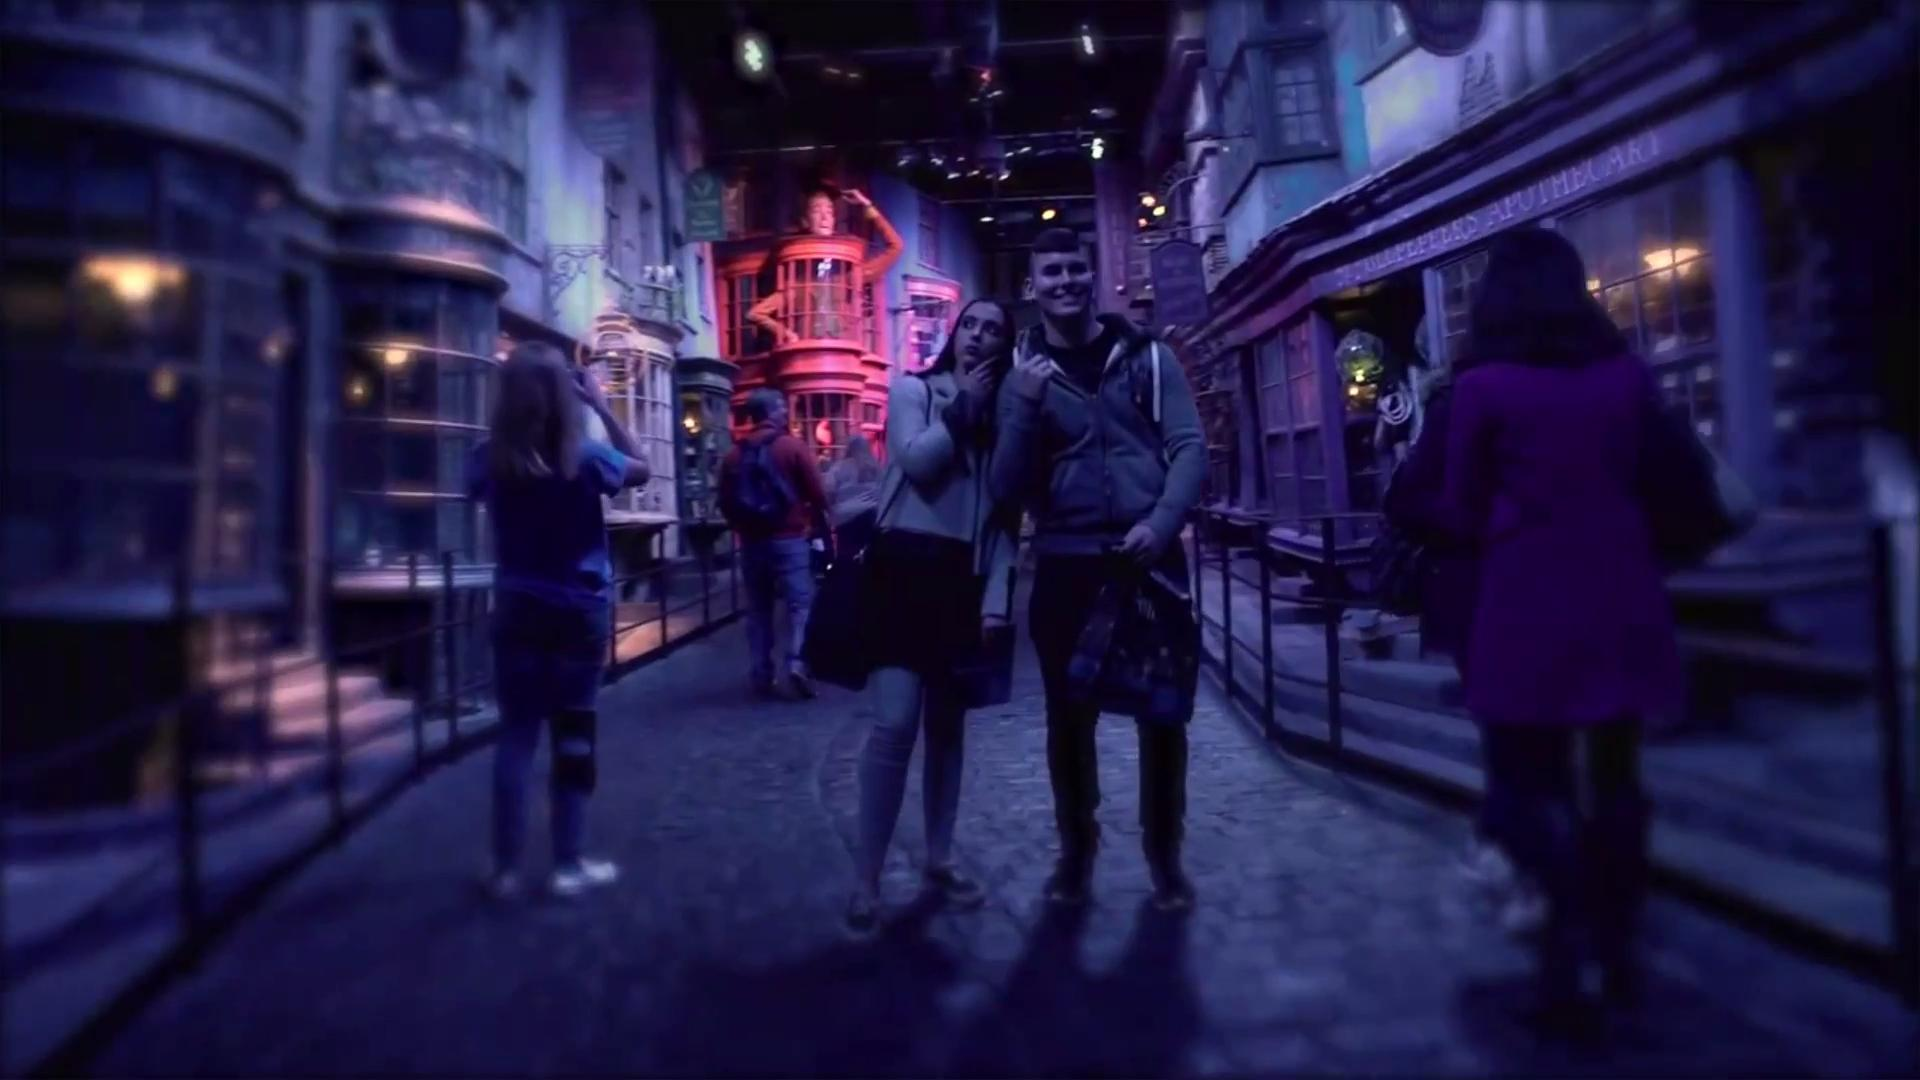 Halloween in Hogwarts is now possible for all Potterheads!